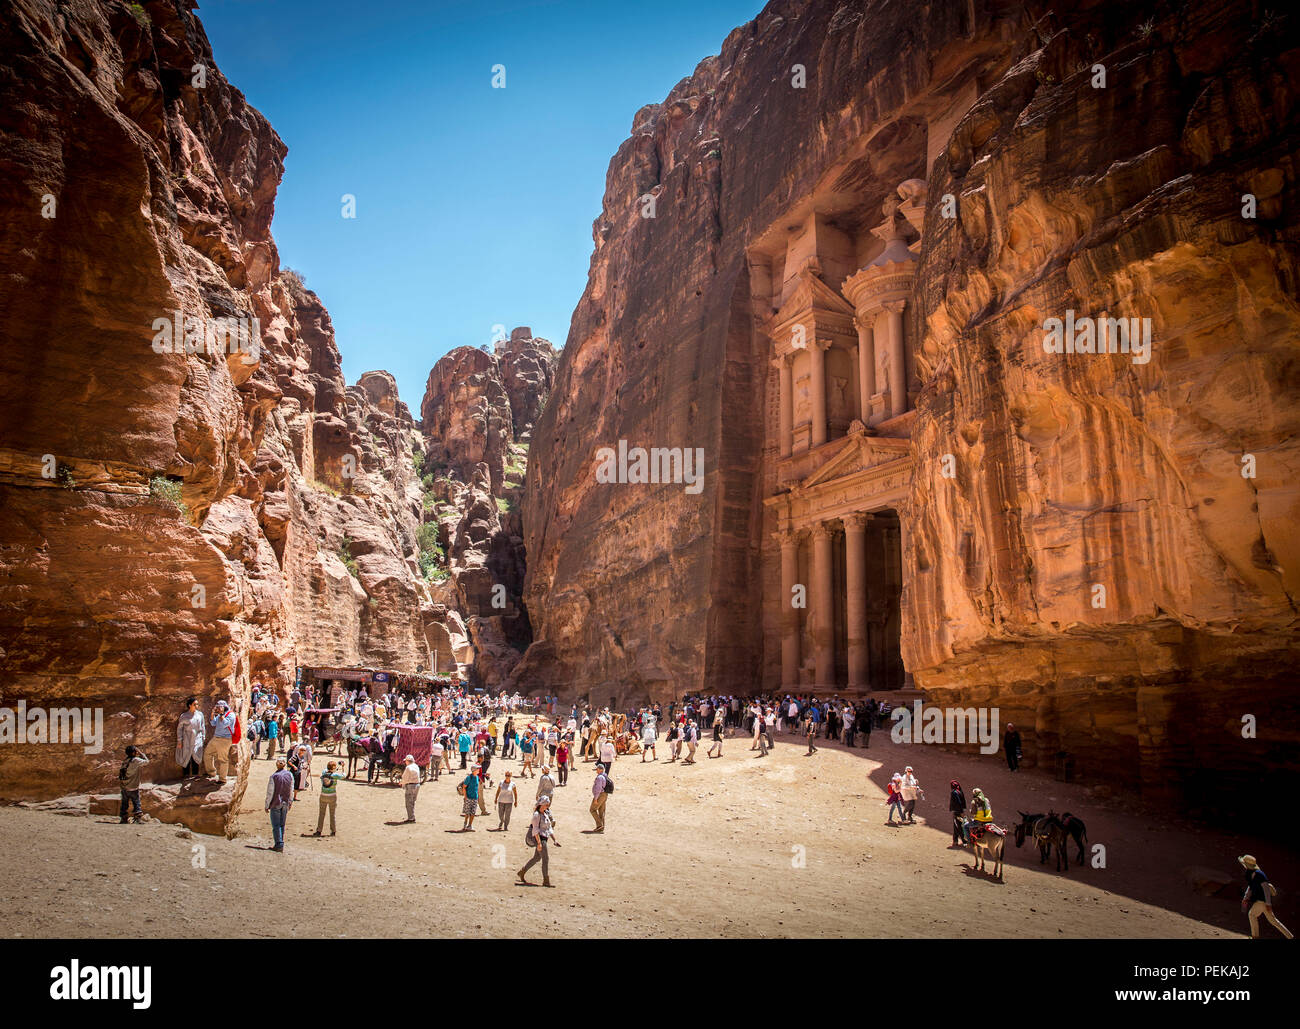 The Treasury Building found in the lost city of Petra , Jordan Stock Photo